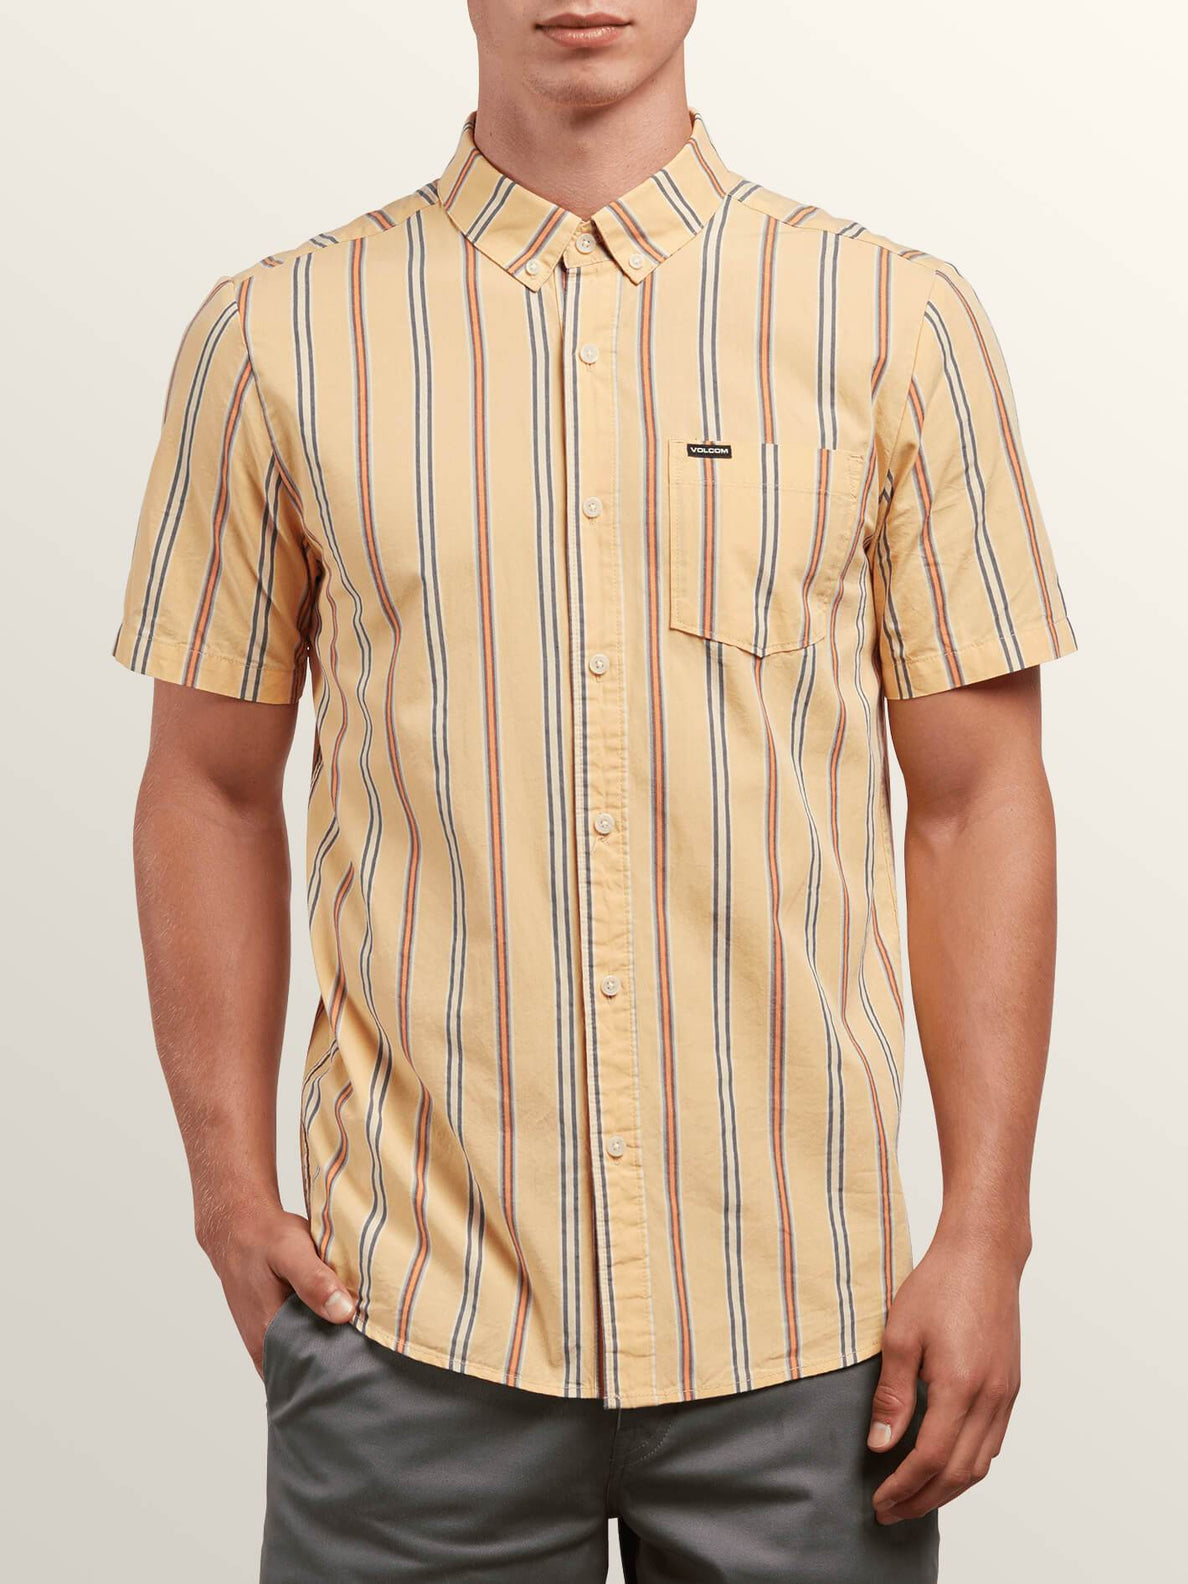 Mix Bag Short Sleeve Shirt In Sunburst, Front View